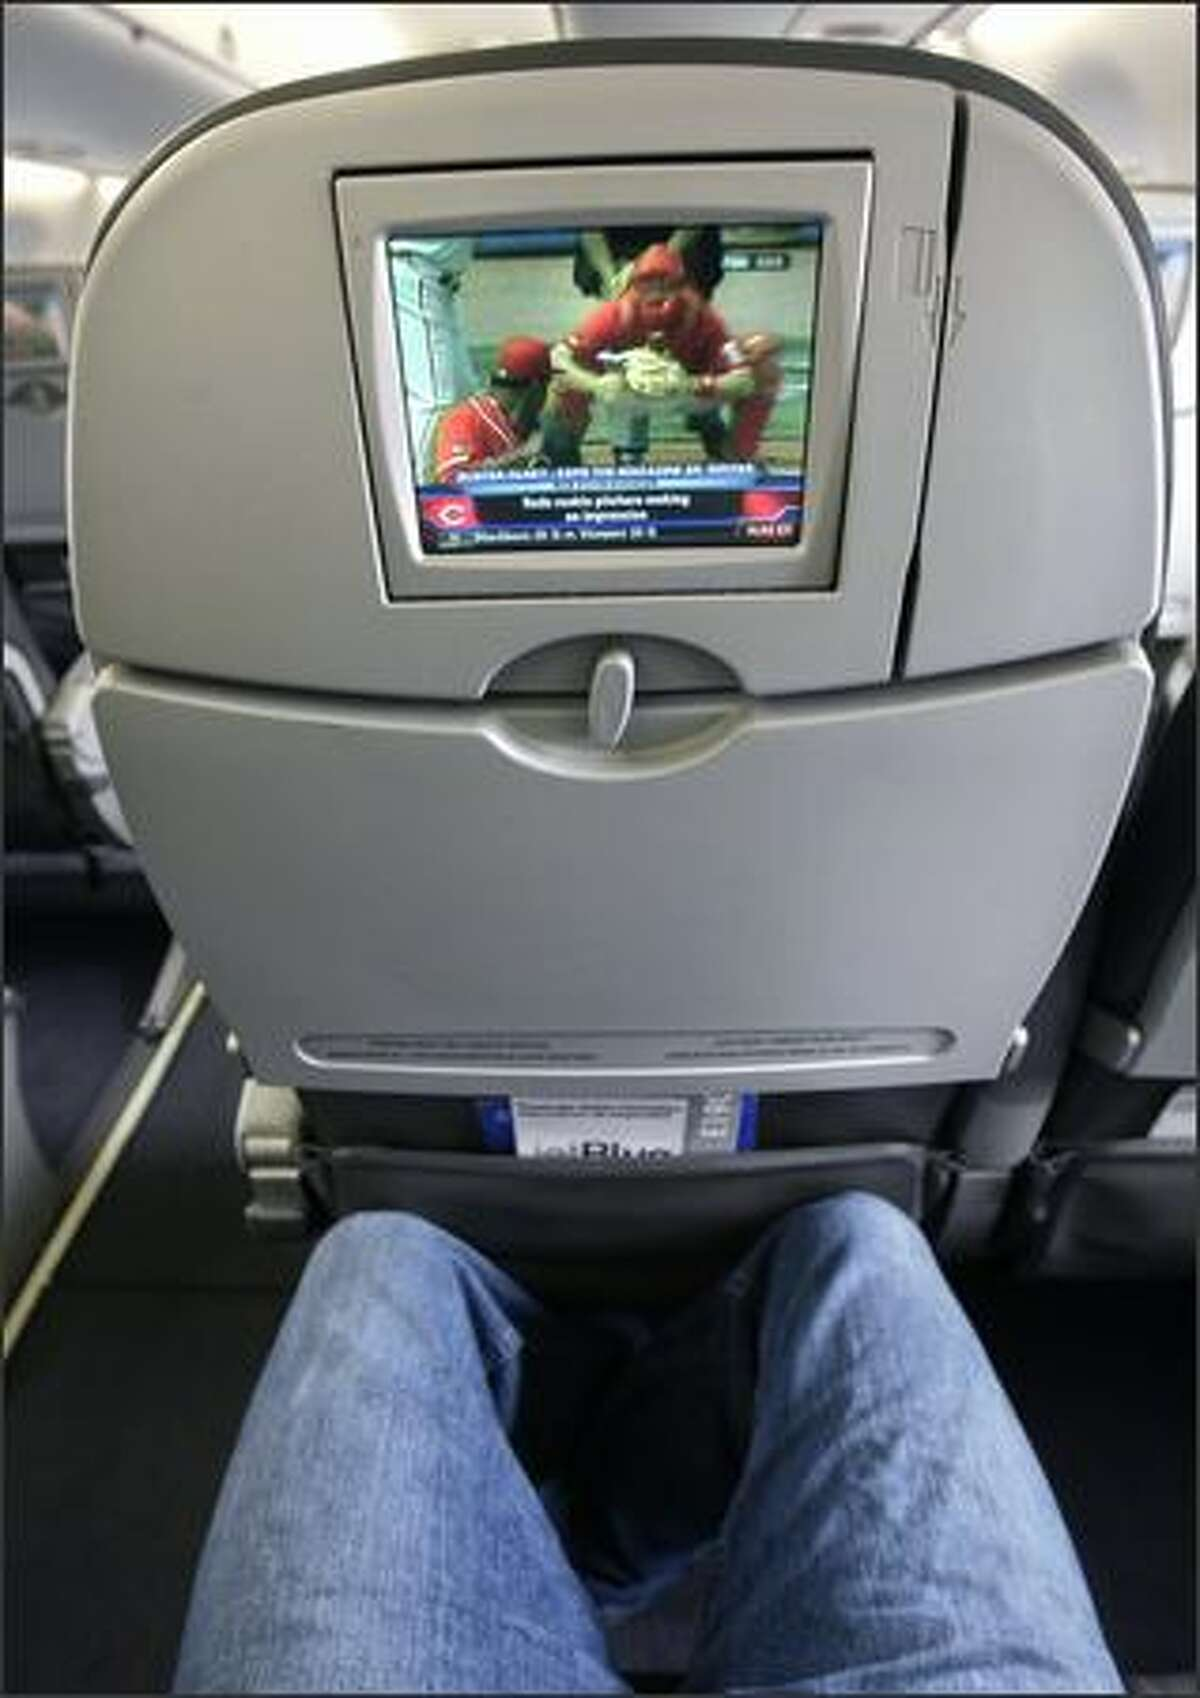 The JetBlue Airways EMBRAER E190 airplane features 36 channels of free DIRECTV programming, XM Satellite Radio and FOX InFlight movies. The cabin brags the best legroom in coach and no middle seats, with each row consisting of 4 passengers, split into twos by the aisle.